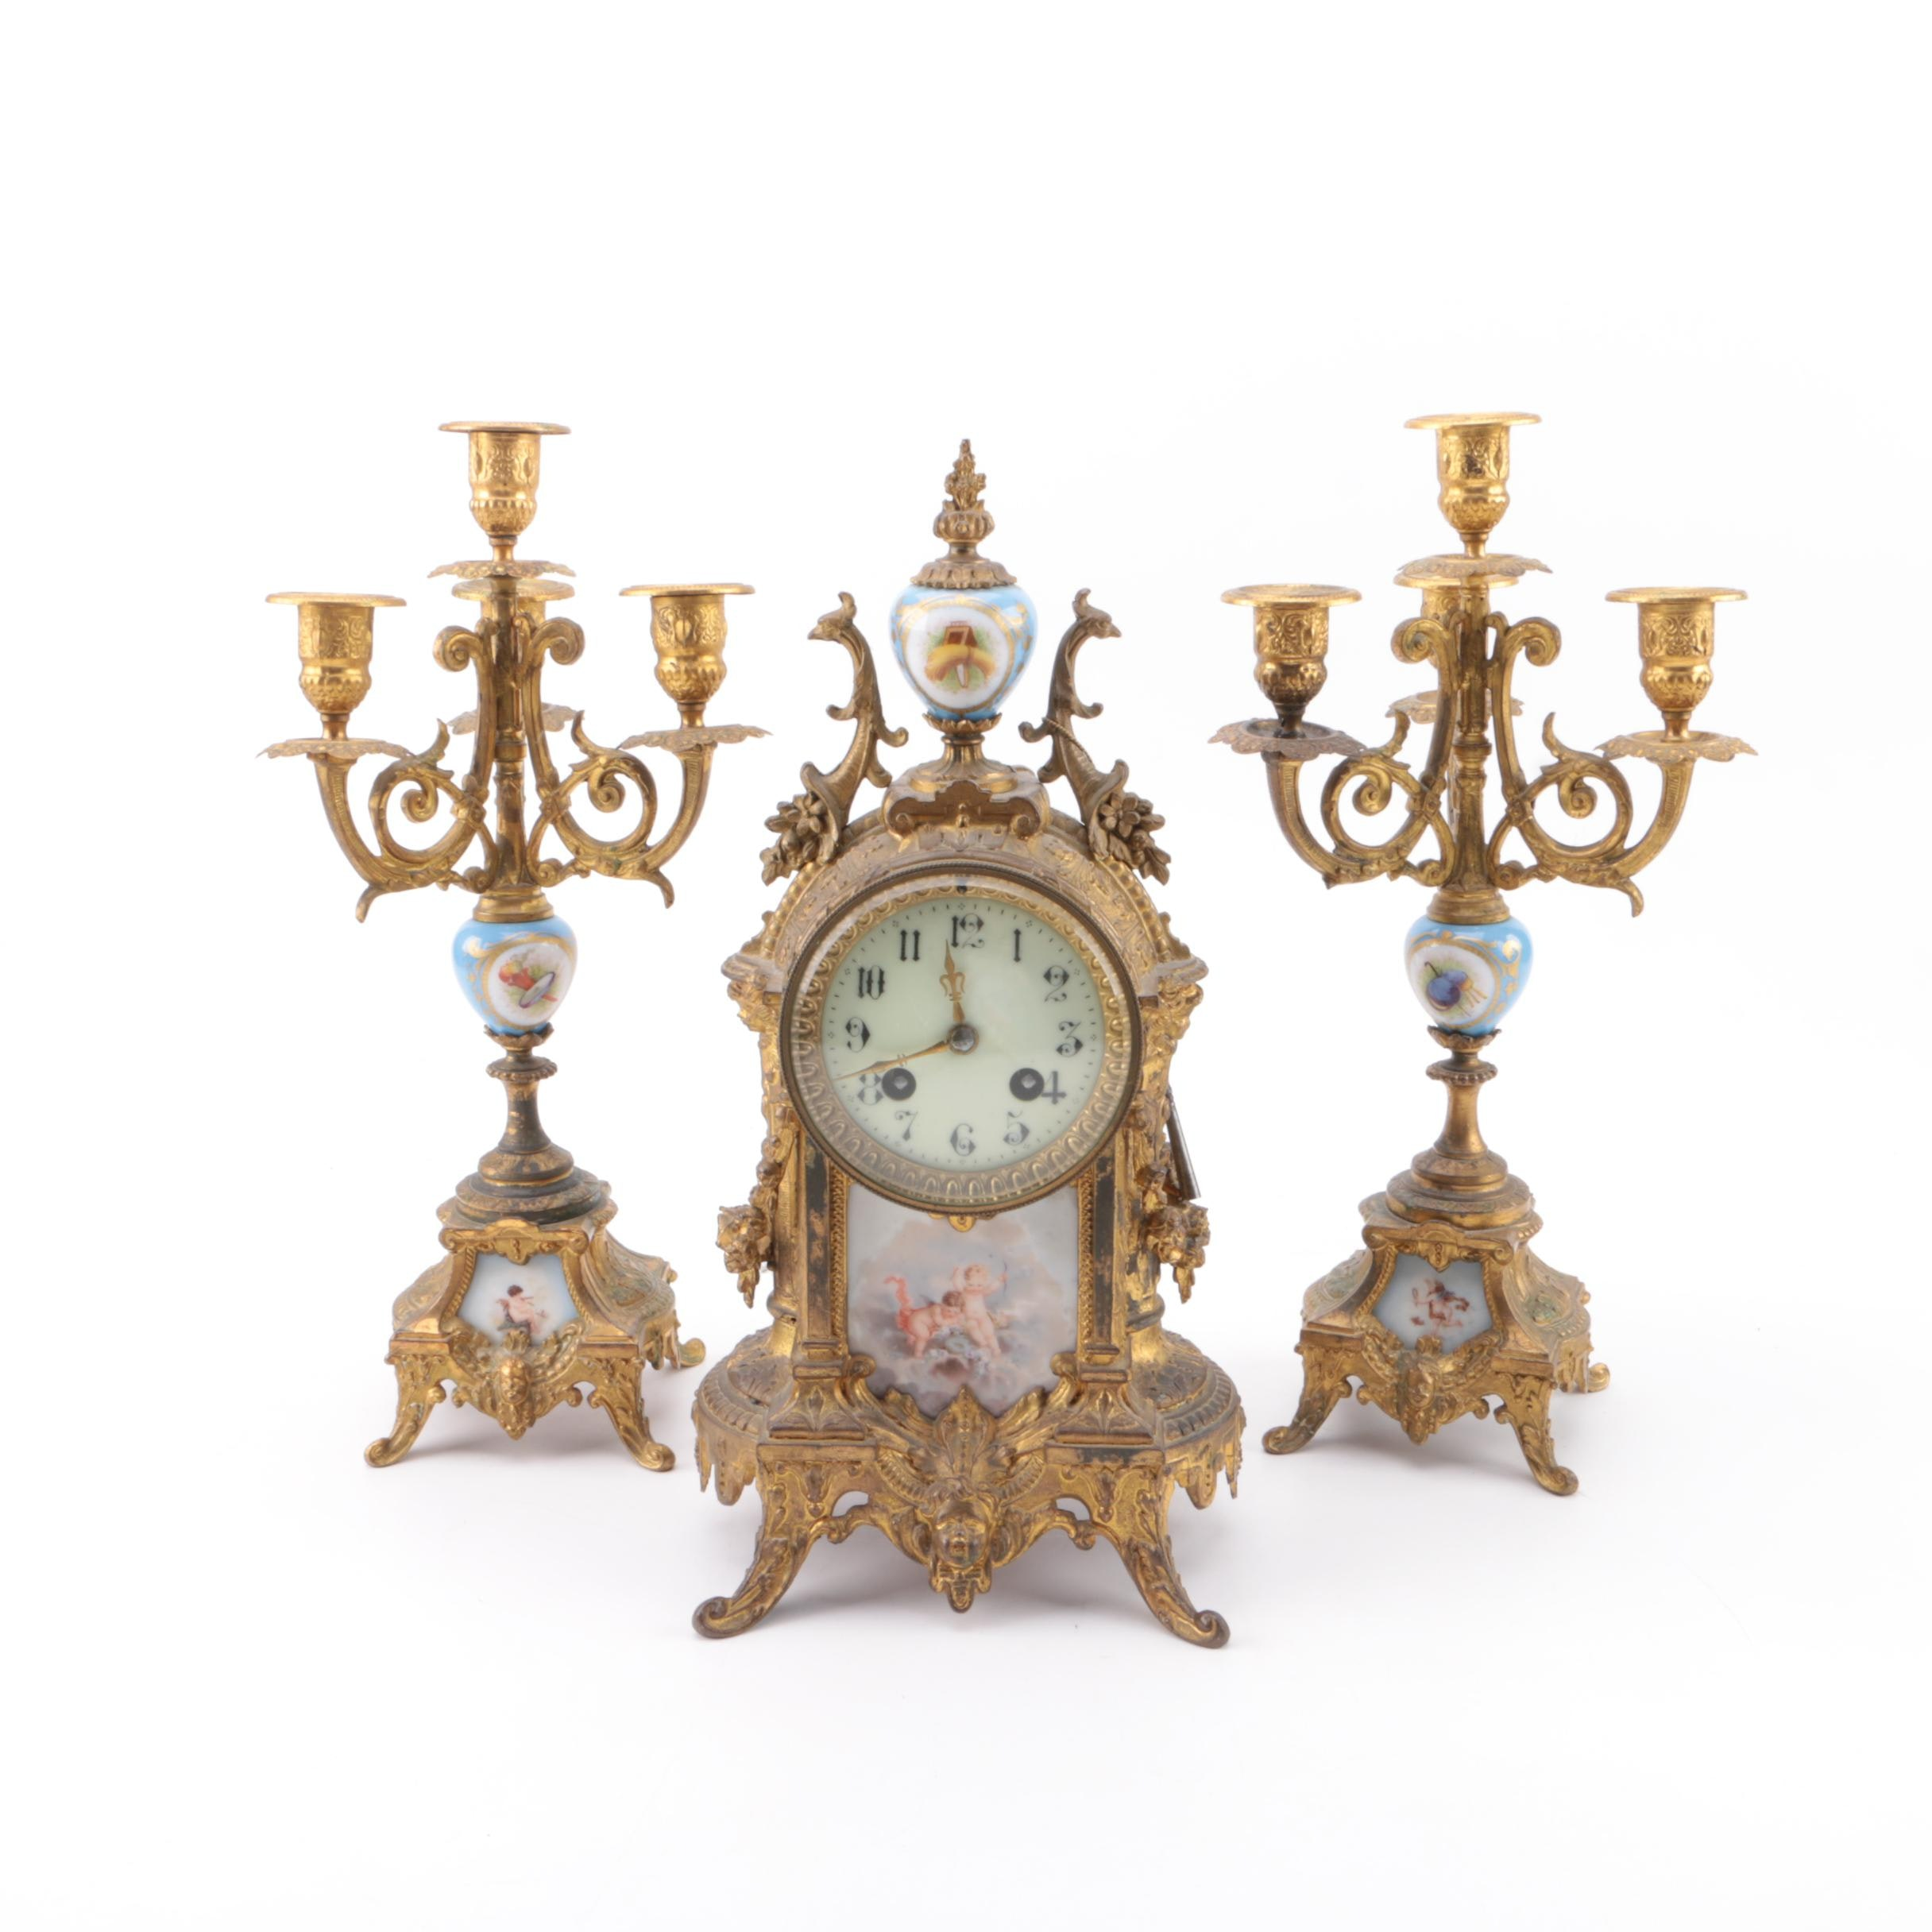 Brass and Painted Glass French Rococo Style Clock and Candlestick Holders